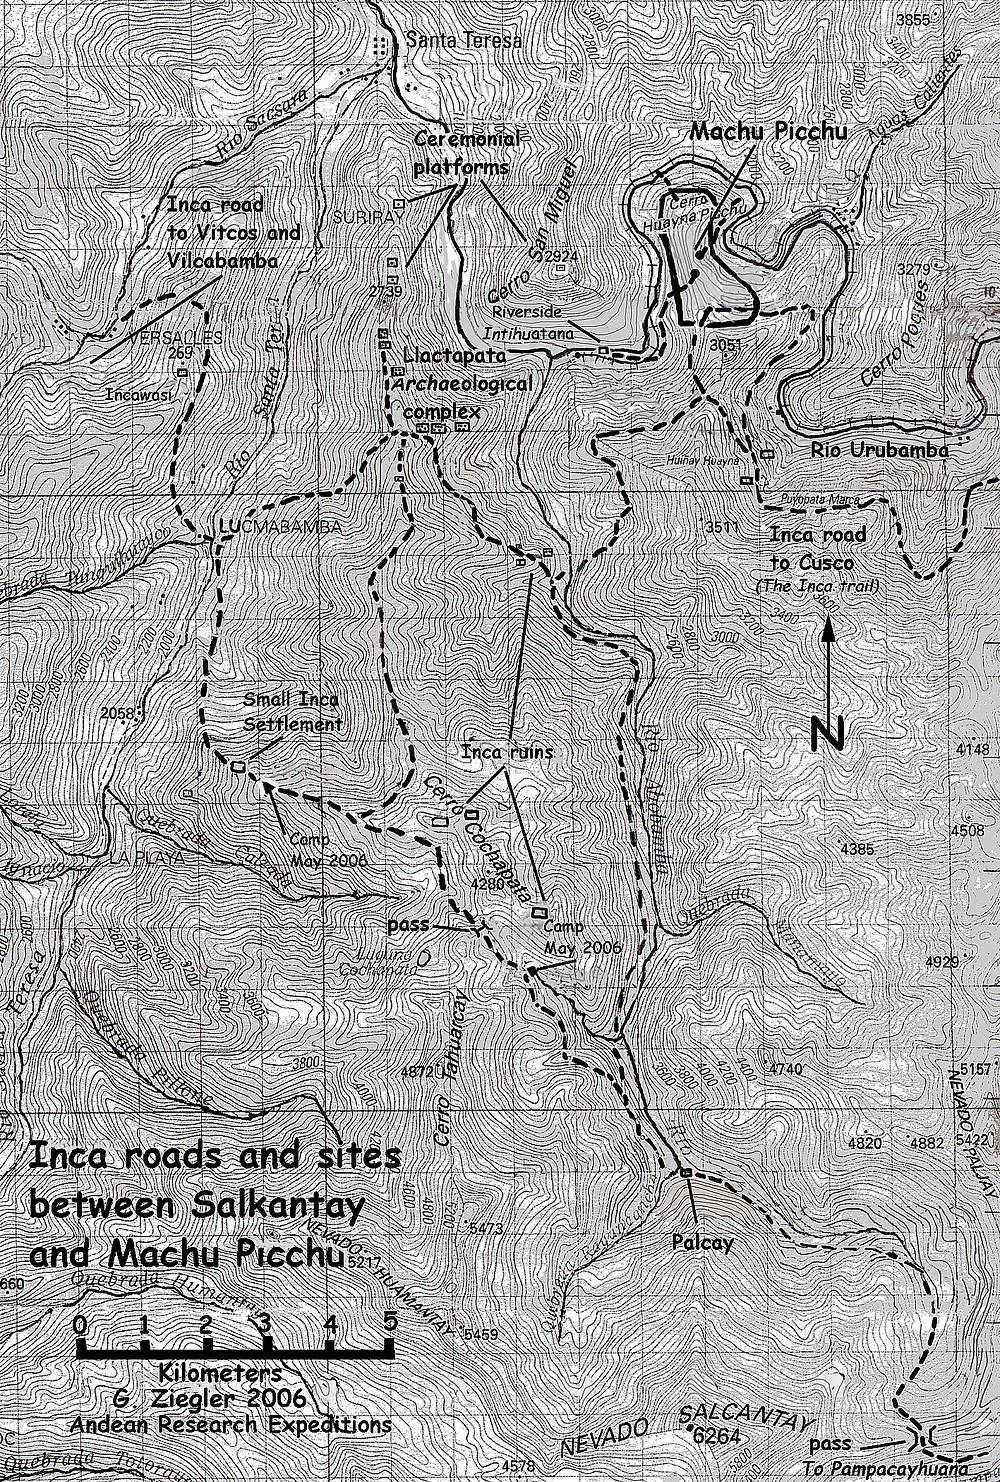 map of Inca roads (trails) to Machu Picchu, Llactapata and Palcay